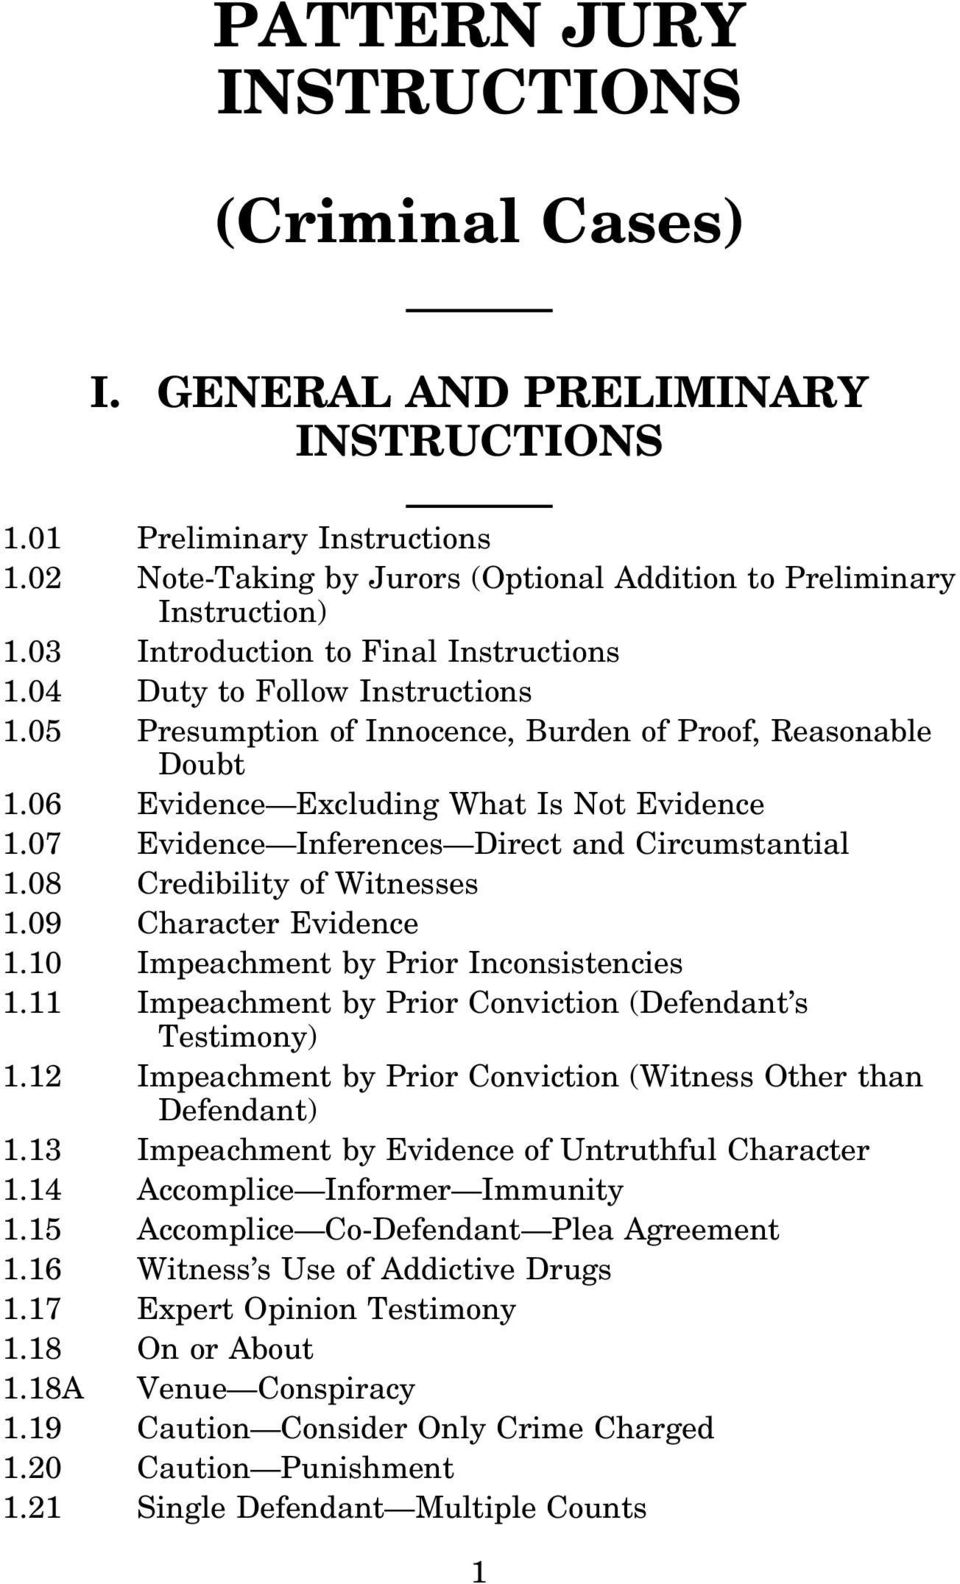 07 Evidence Inferences Direct and Circumstantial 1.08 Credibility of Witnesses 1.09 Character Evidence 1.10 Impeachment by Prior Inconsistencies 1.